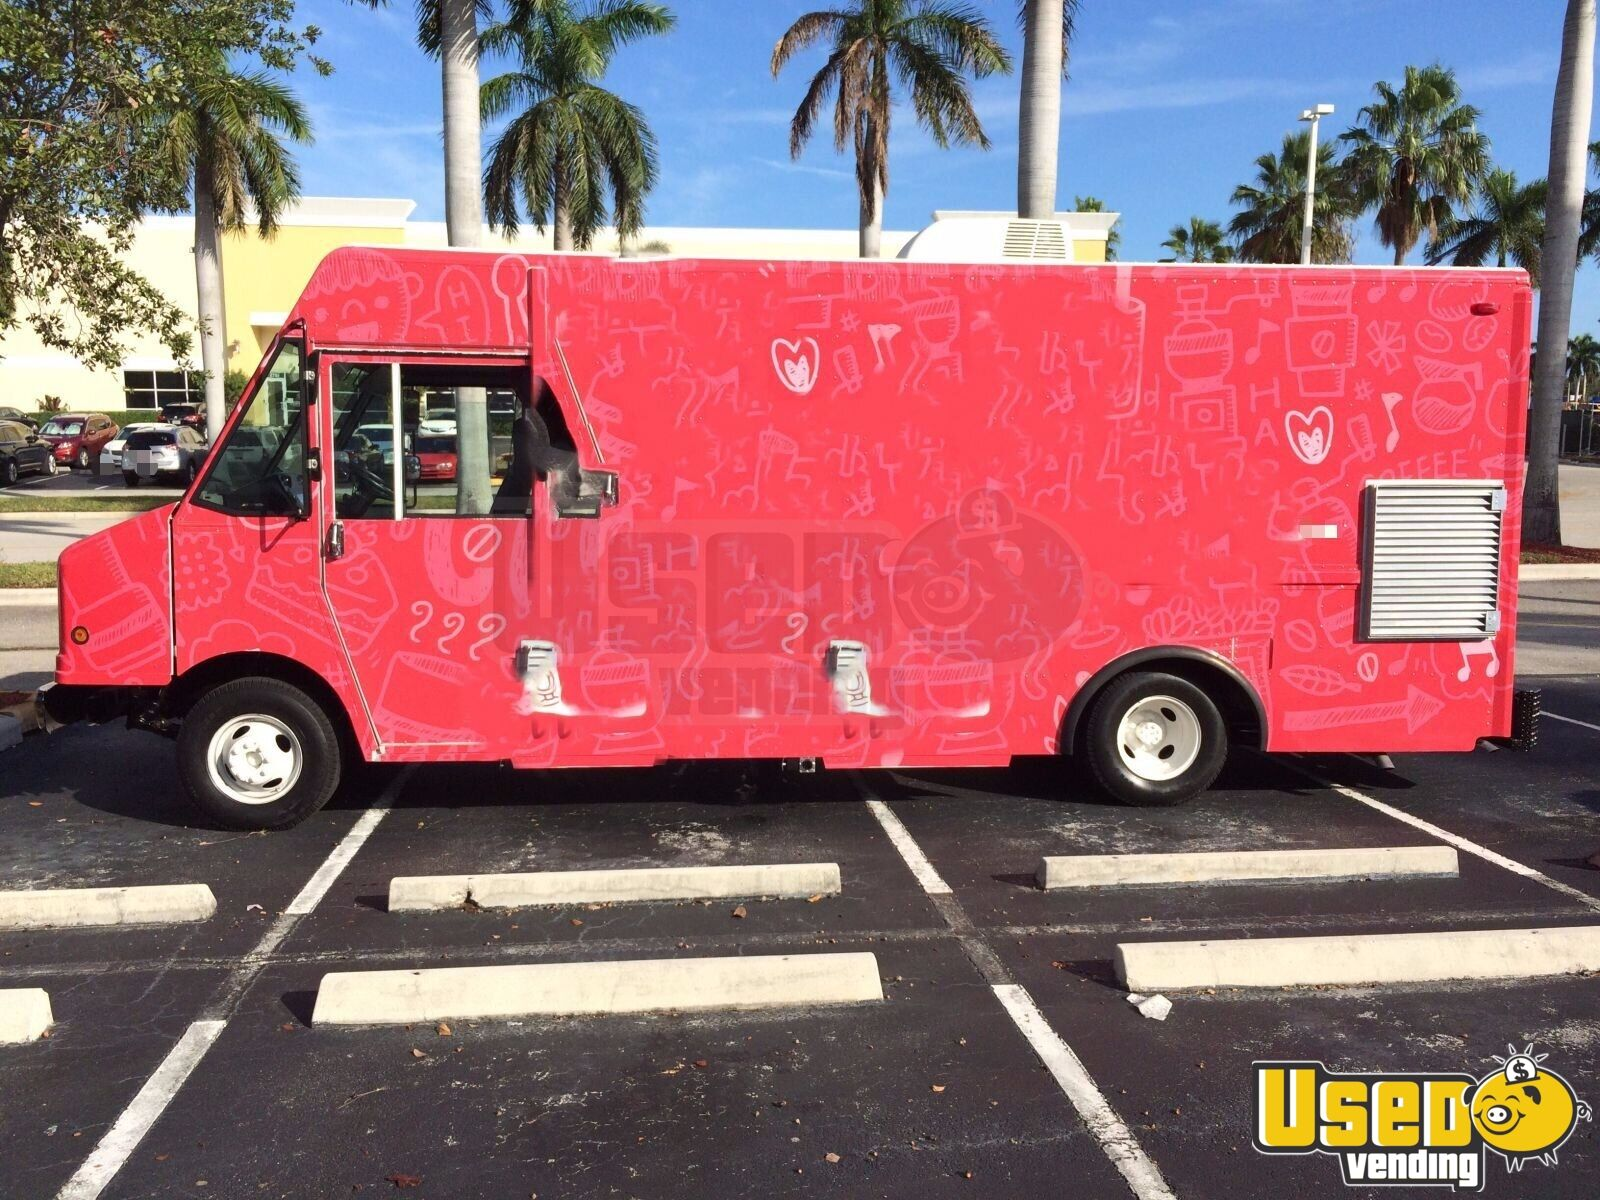 1998 Chevi P30 All-purpose Food Truck Air Conditioning Florida Gas Engine for Sale - 2